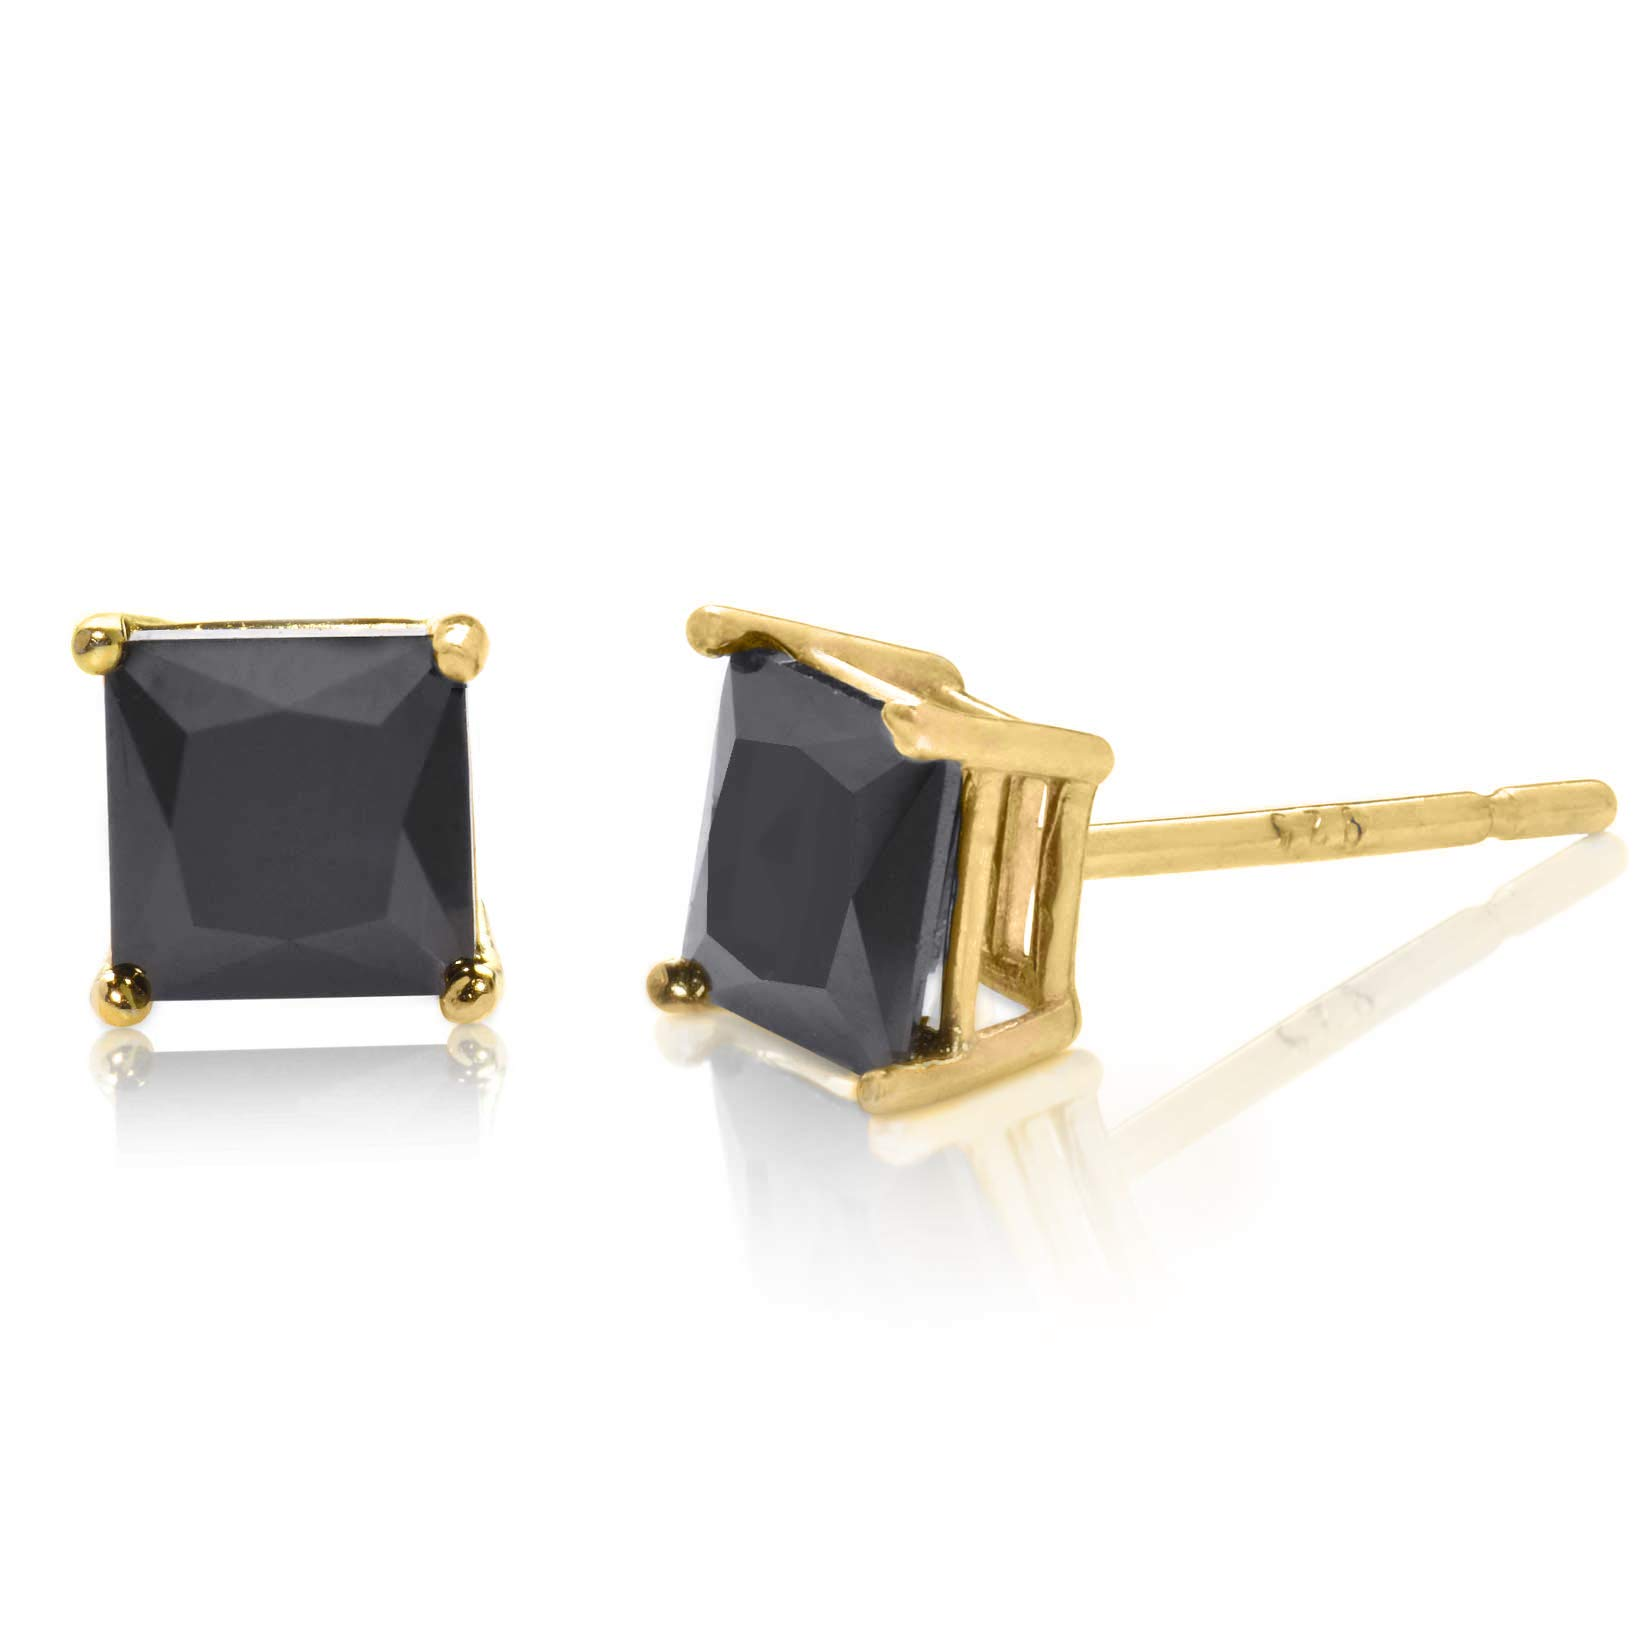 Radiant Princess Square Cut Black CZ Unisex Stud Earrings Gold Plated 925 Sterling Silver 5x5mm